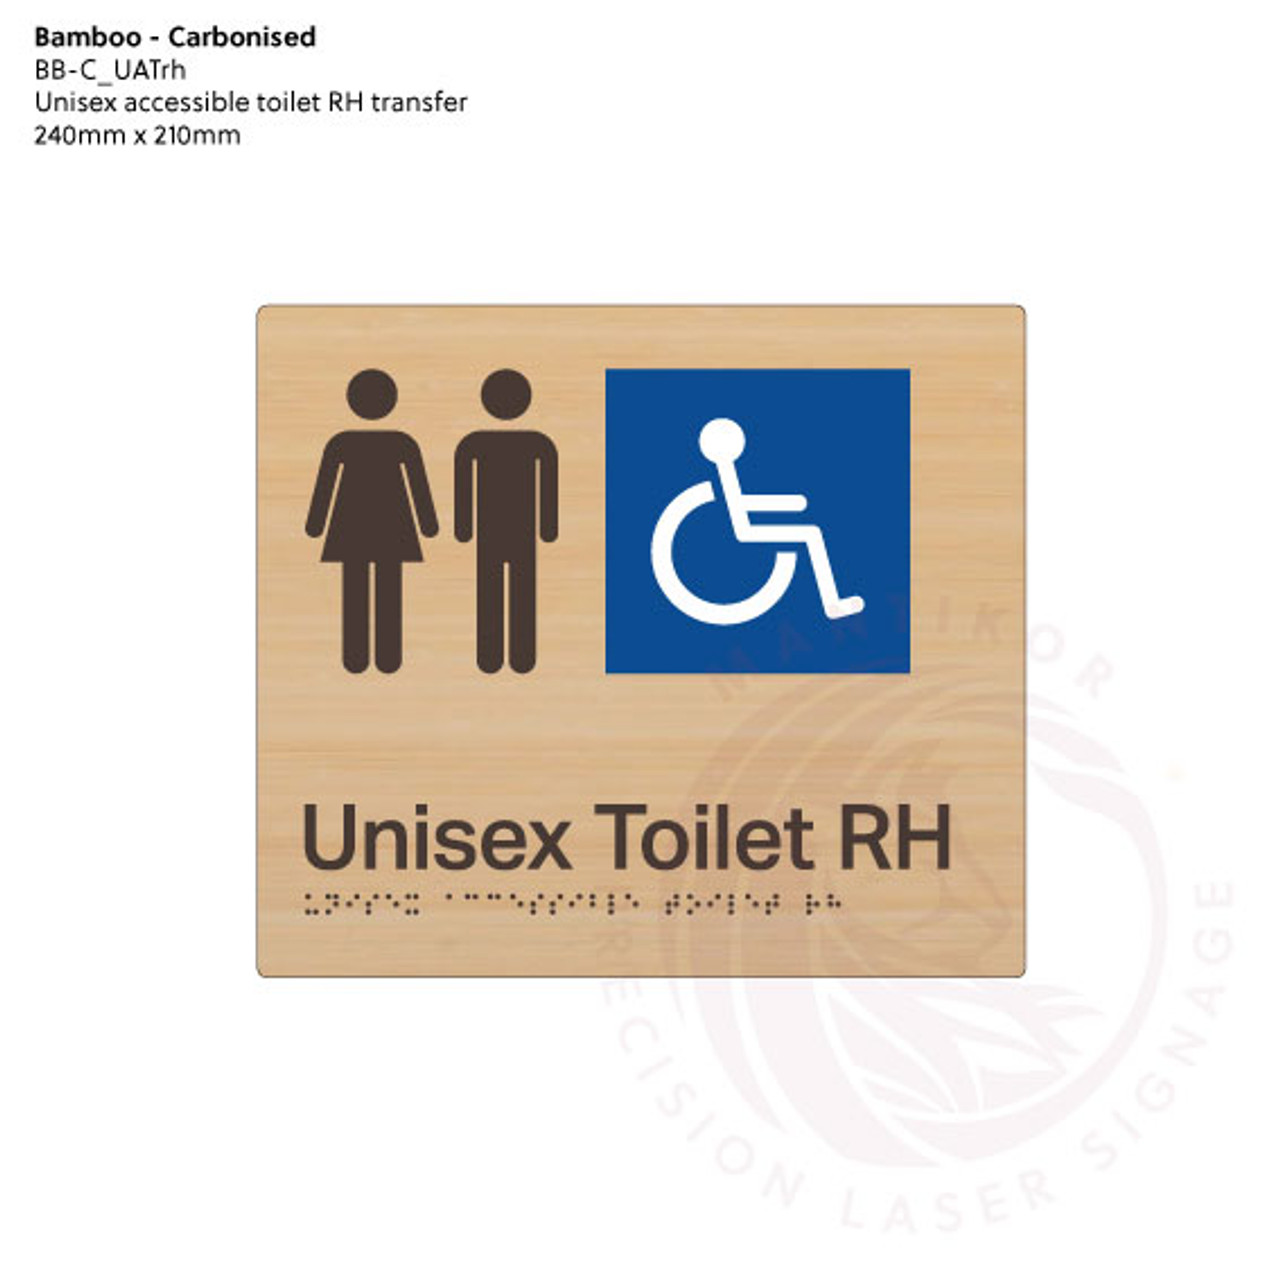 Carbonised Bamboo Tactile Braille Signs - Unisex Accessible Toilet RH